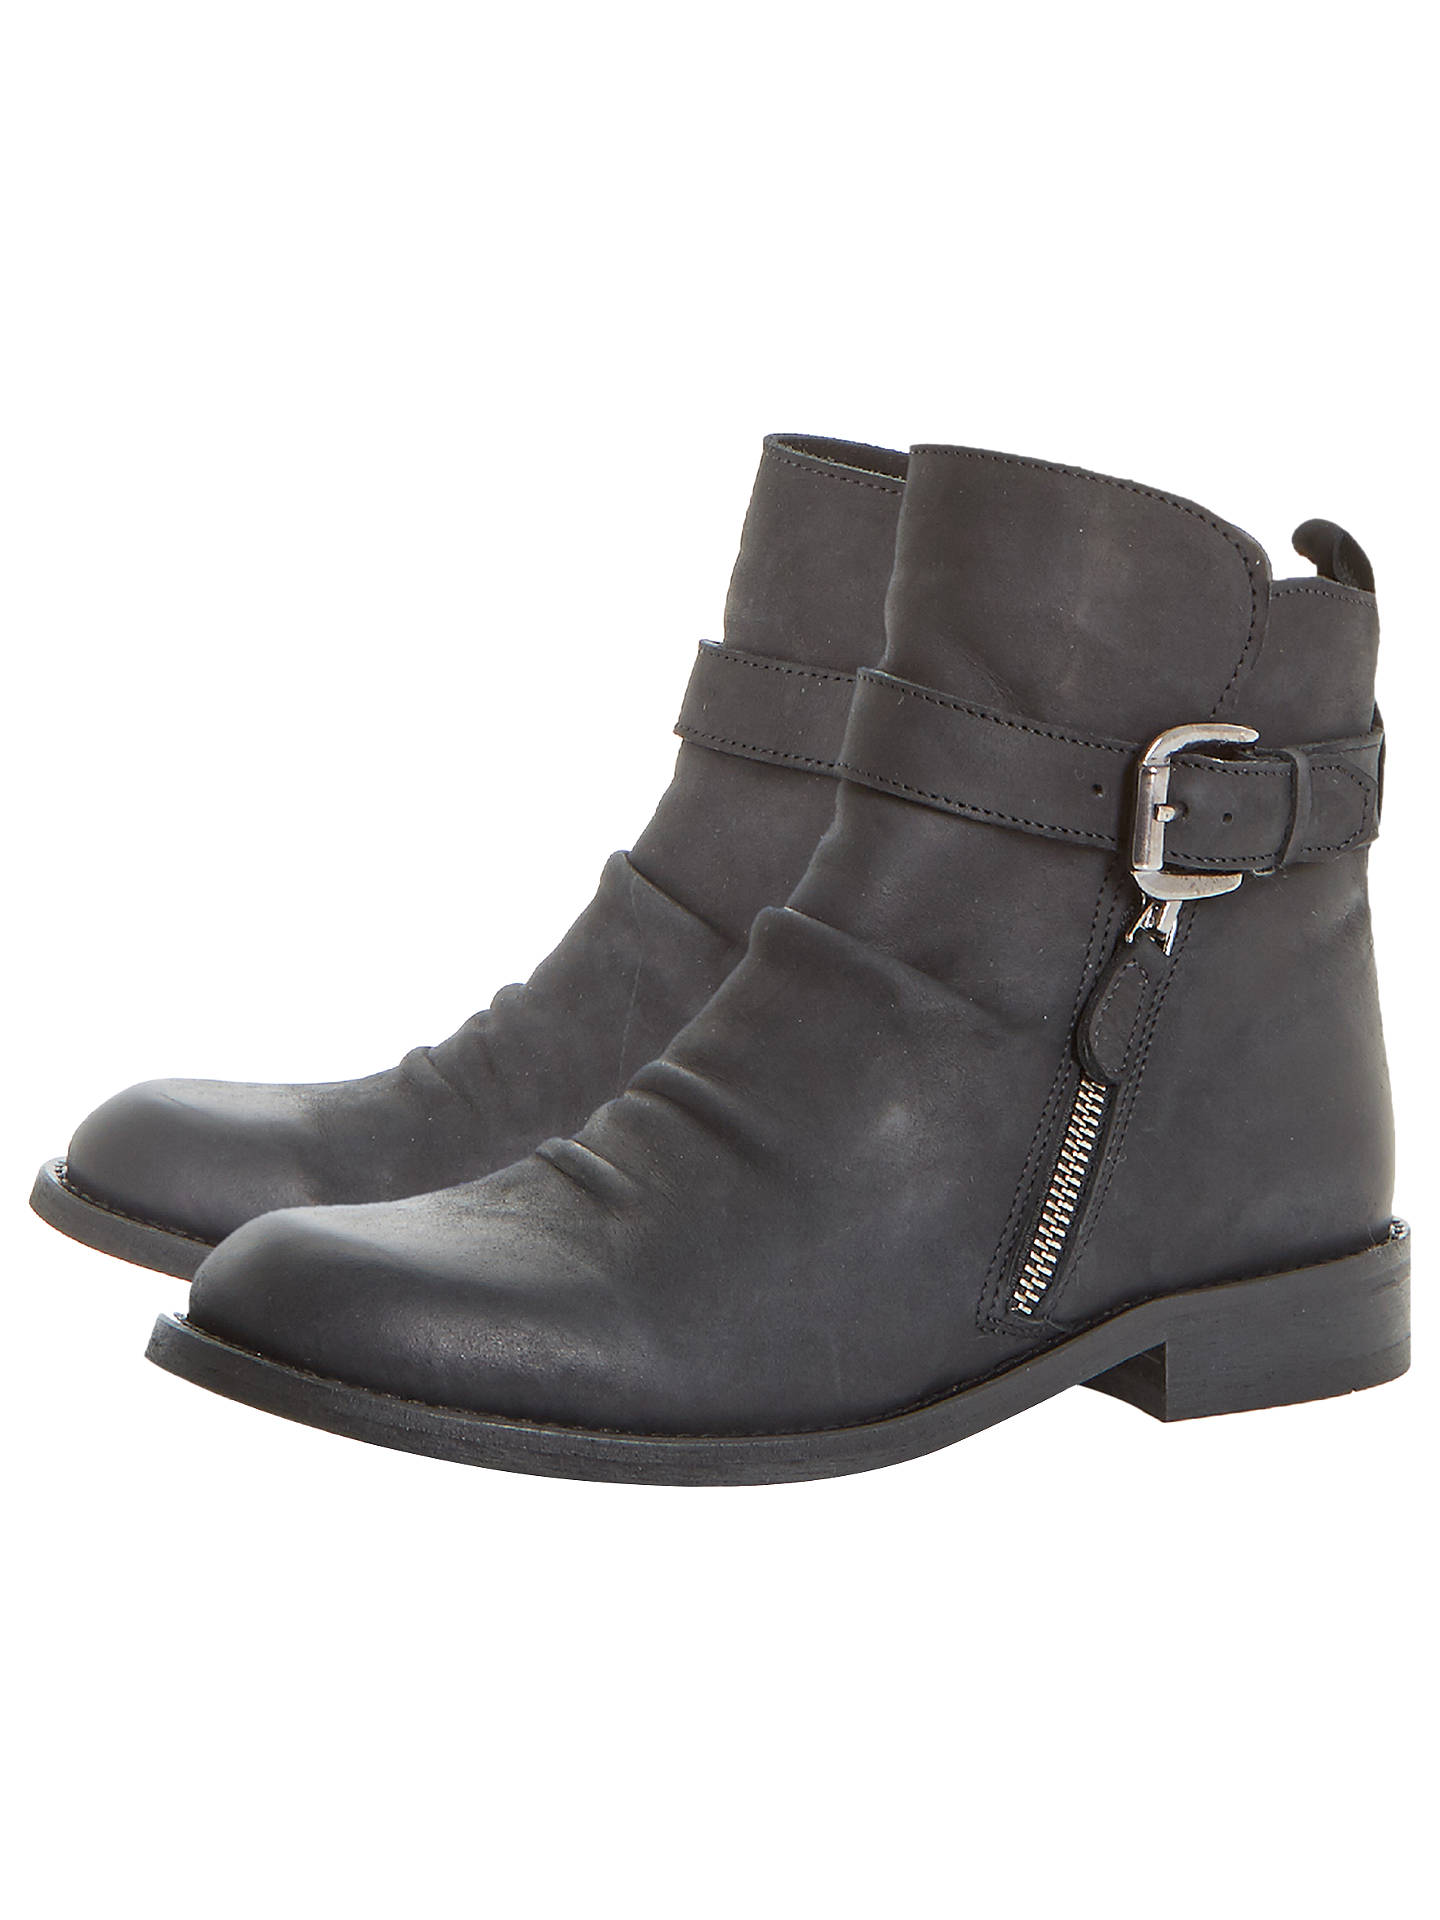 BuyBertie Penbury Buckle Ankle Boots, Black, 3 Online at johnlewis.com